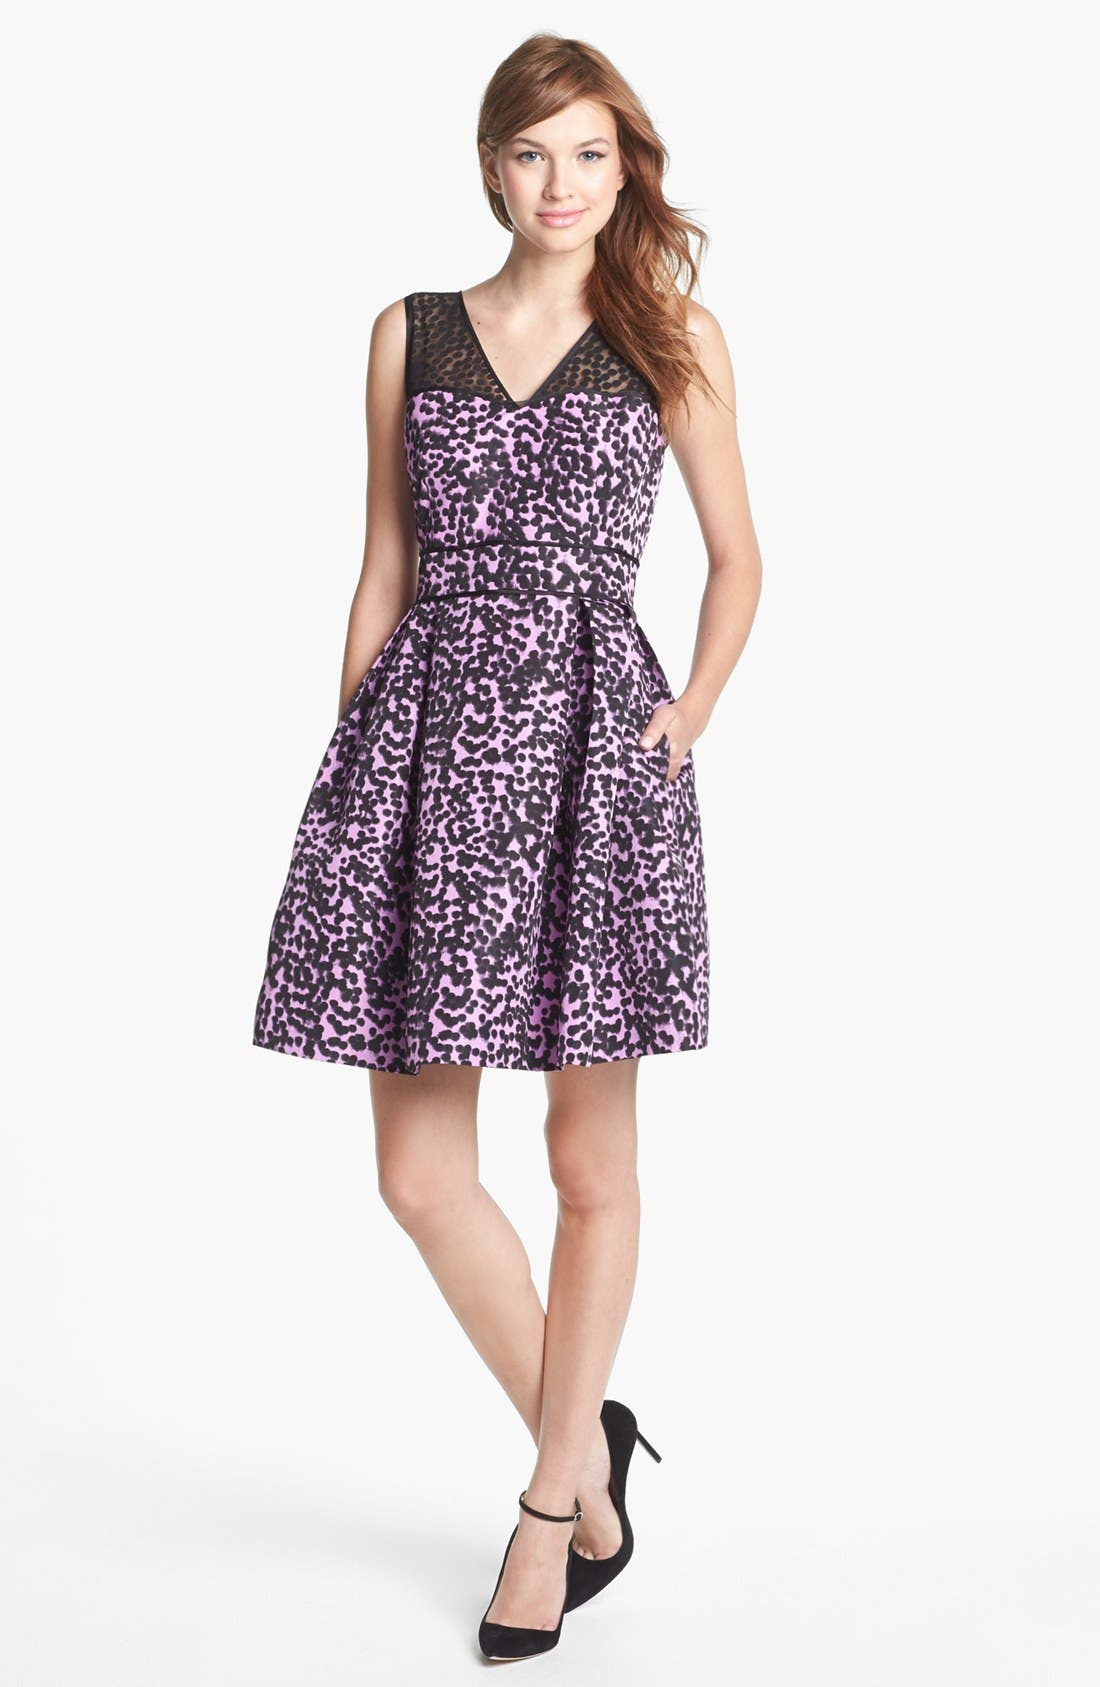 Alternate Image 1 Selected - Taylor Dresses Print Fit & Flare Dress